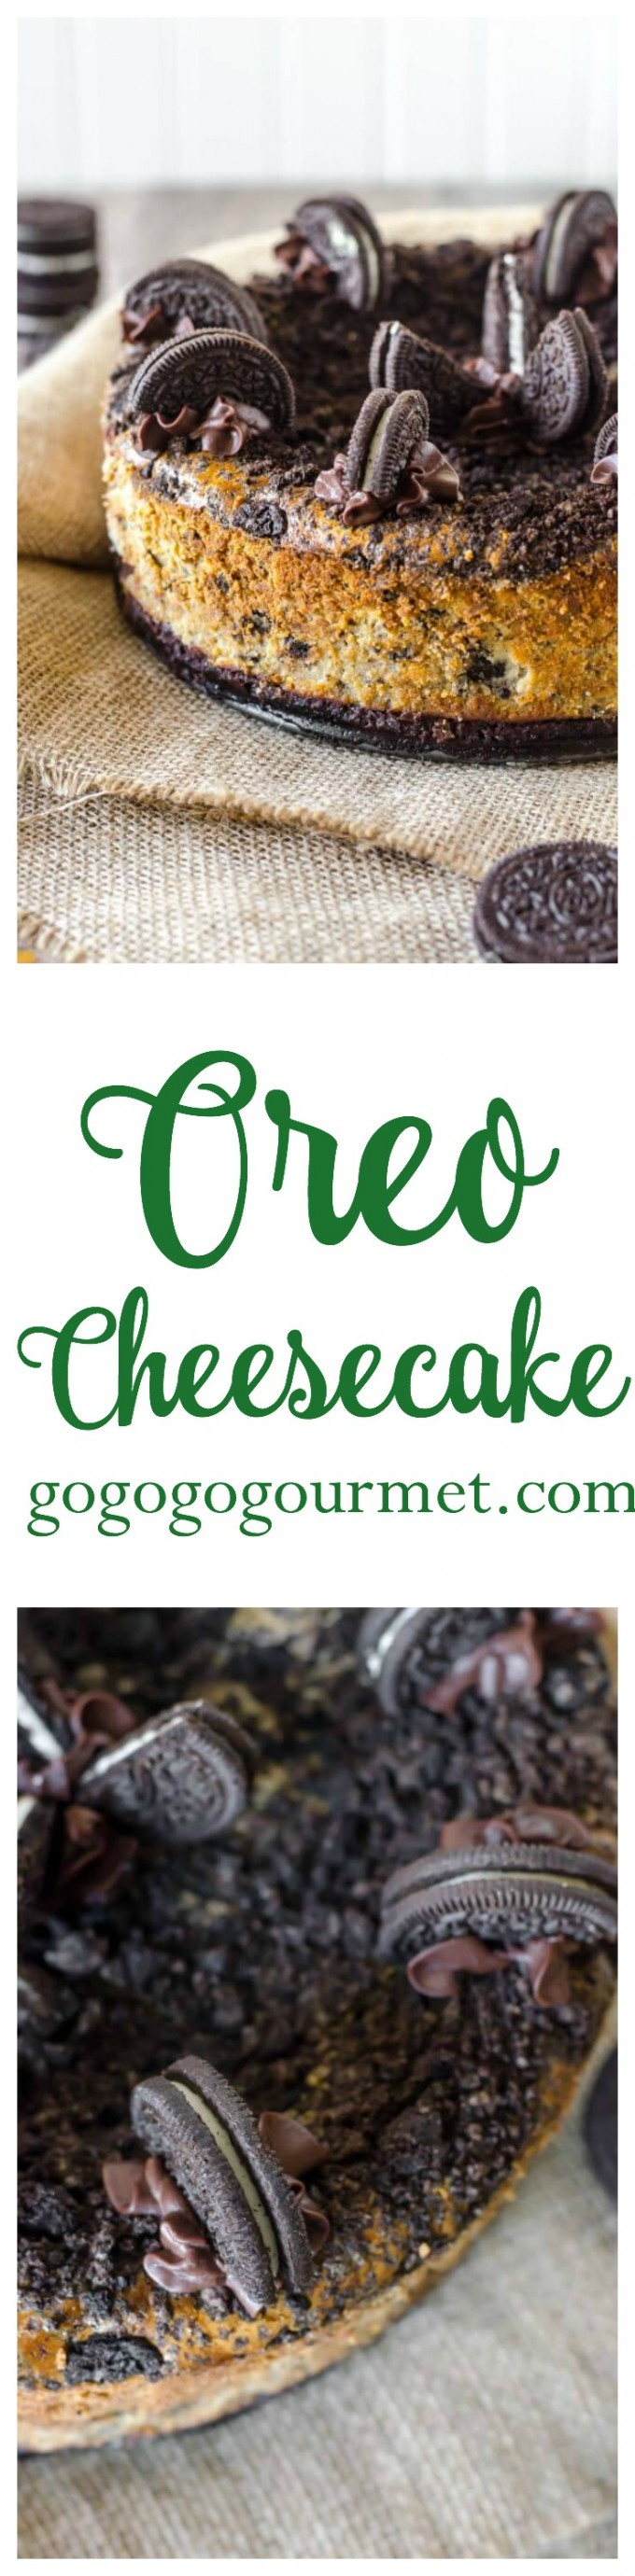 With FORTY Oreos in this cheesecake (plus a layer of chocolate ganache!), how could this be anything but incredible? Oreo Cheesecake | Go Go Go Gourmet @Go Go Go Gourmet